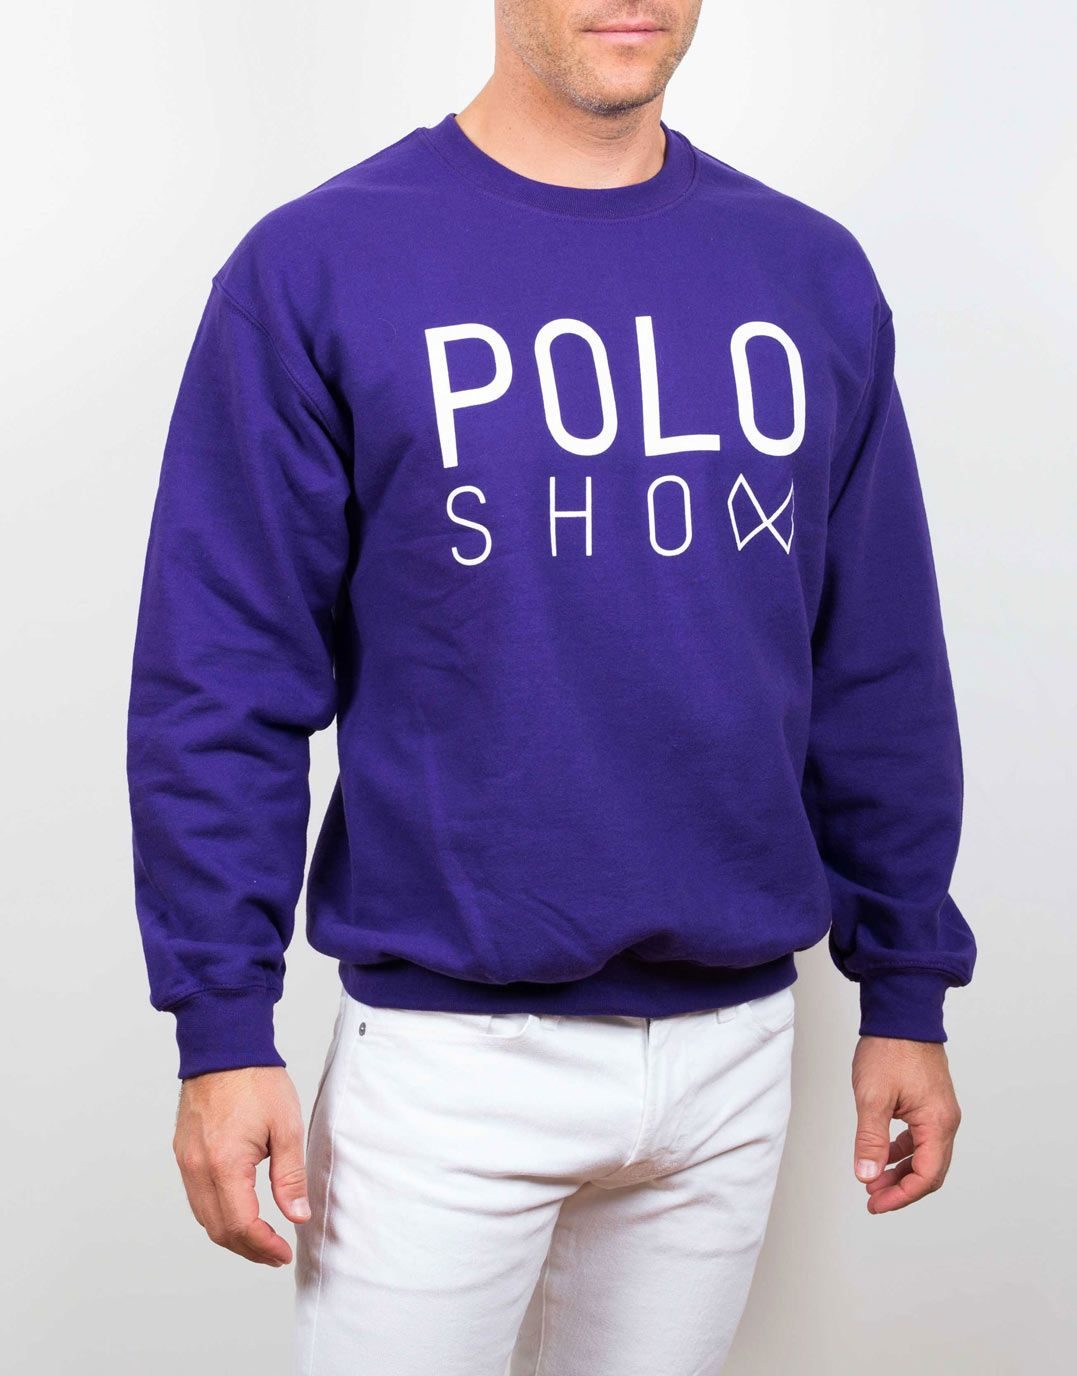 Poloshow sweater purple 4